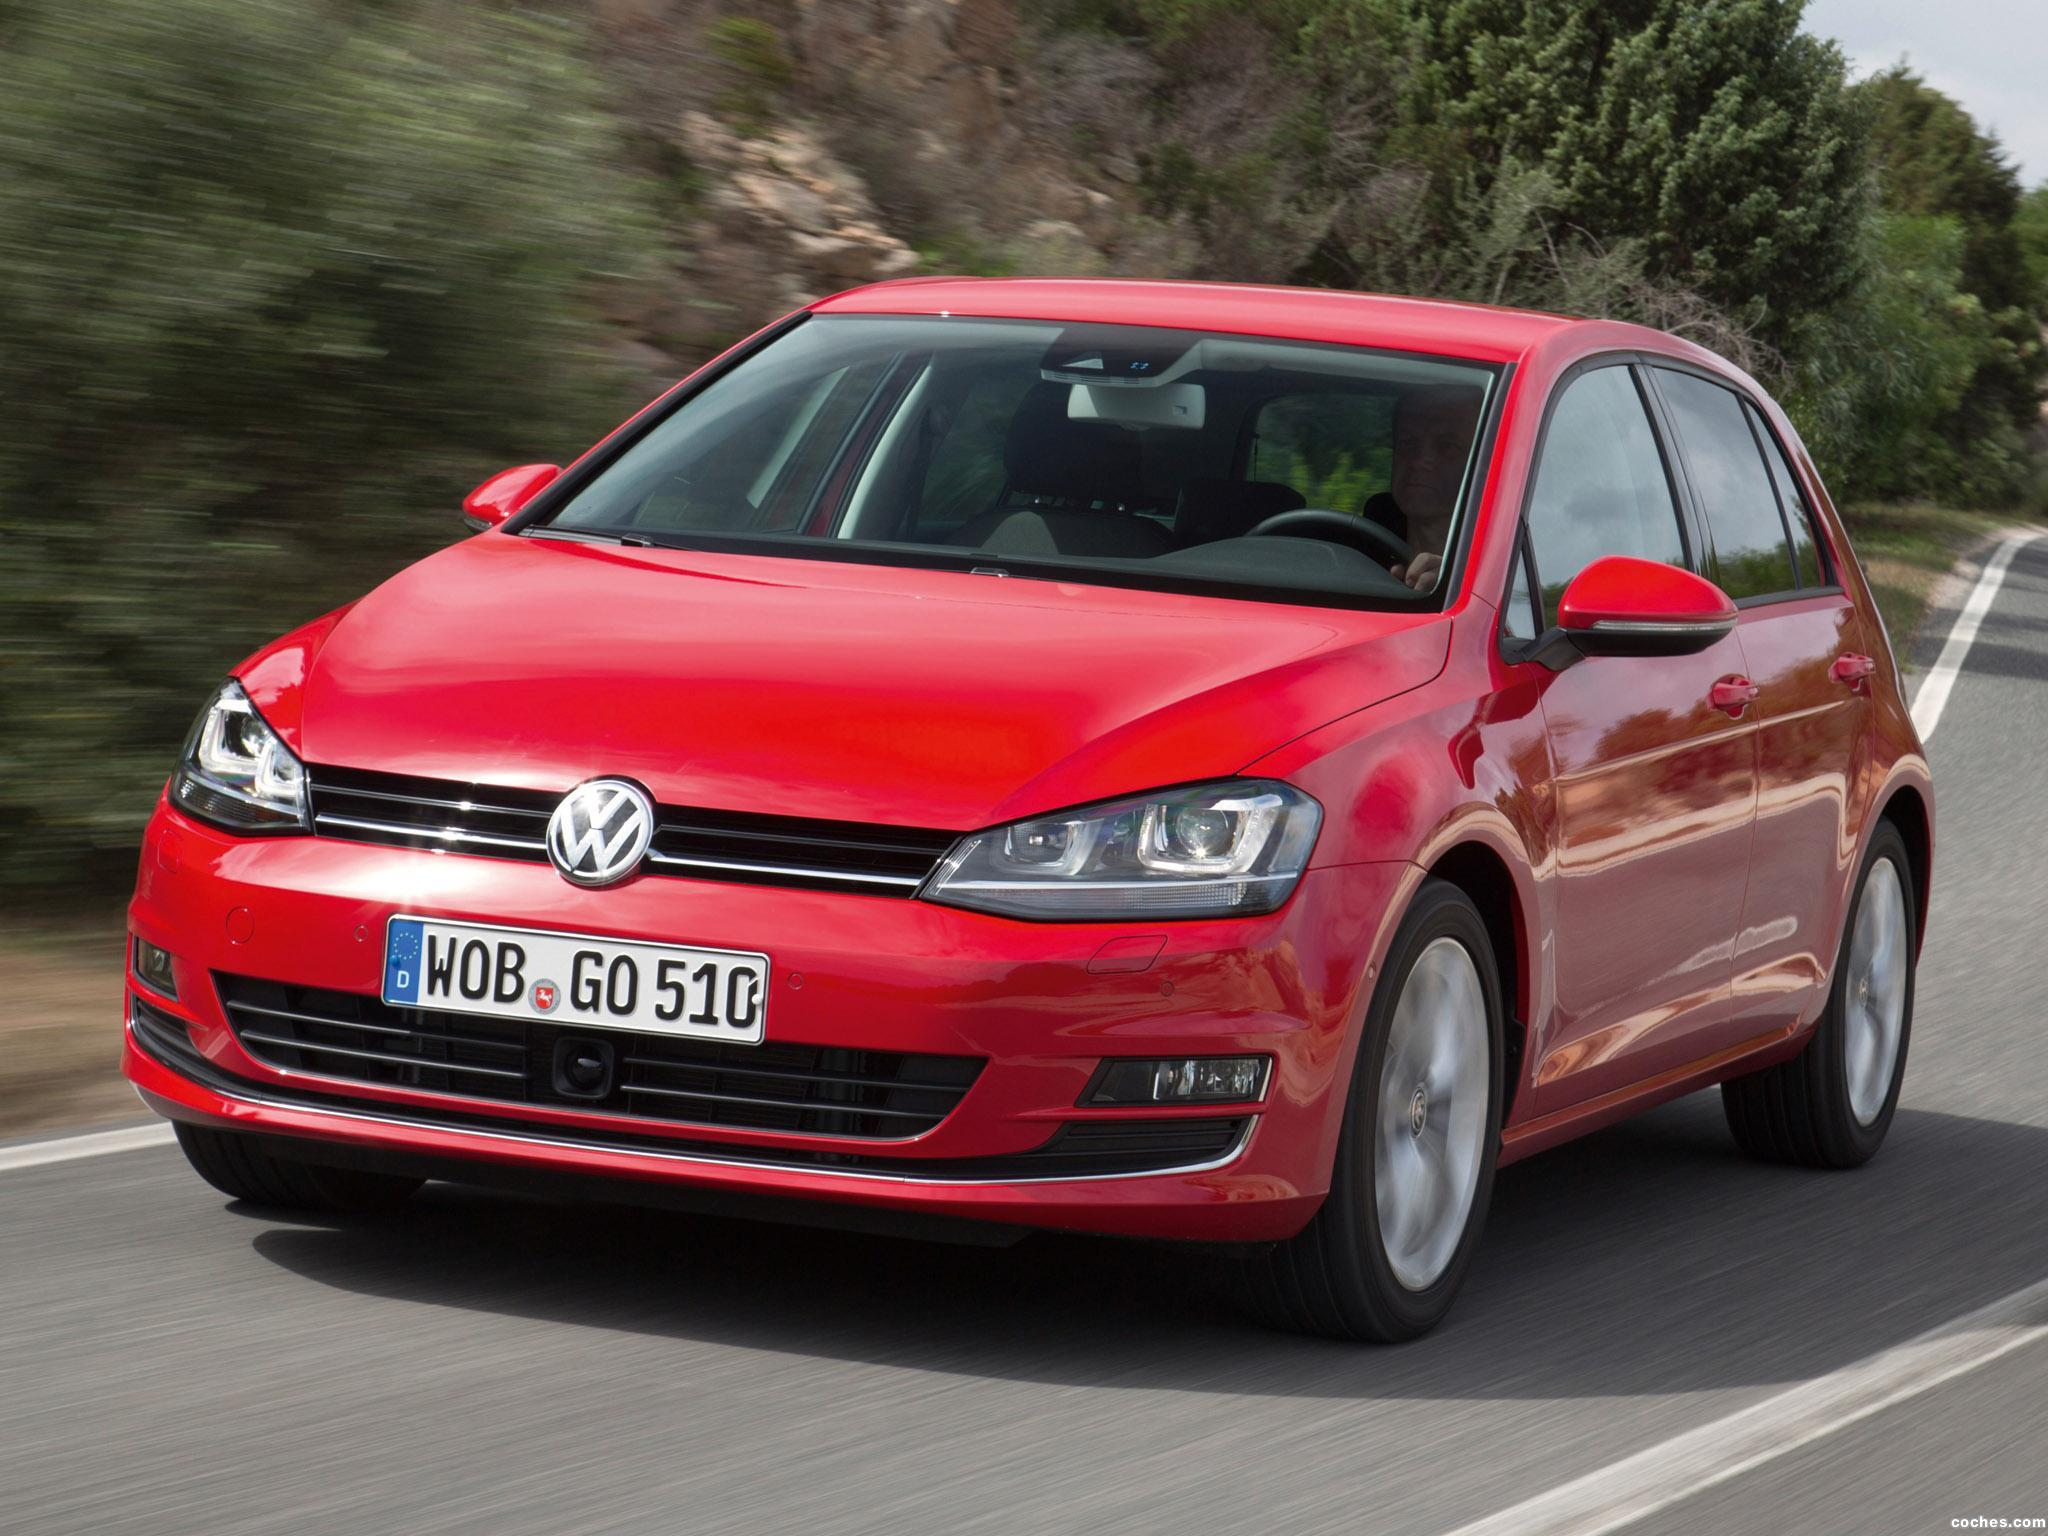 fotos de volkswagen golf 7 5 puertas 2 0 tdi bluemotion 2013. Black Bedroom Furniture Sets. Home Design Ideas